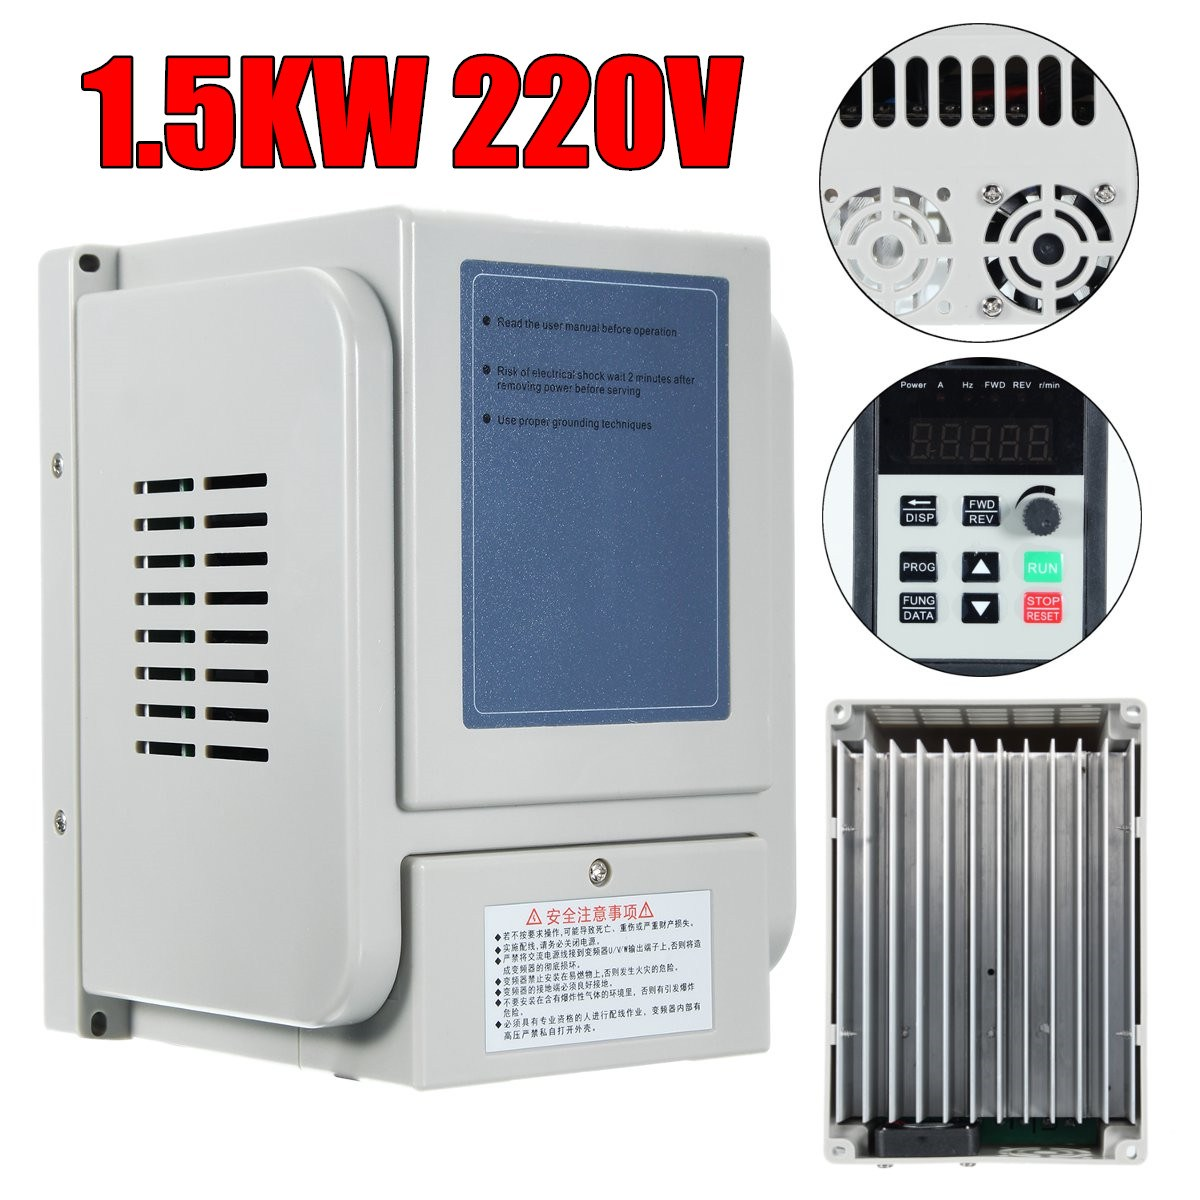 1.5KW 2HP 8A 220V AC Single Phase Variable Frequency Drive Inverter VFD baileigh wl 1840vs heavy duty variable speed wood turning lathe single phase 220v 0 to 3200 rpm inverter driven